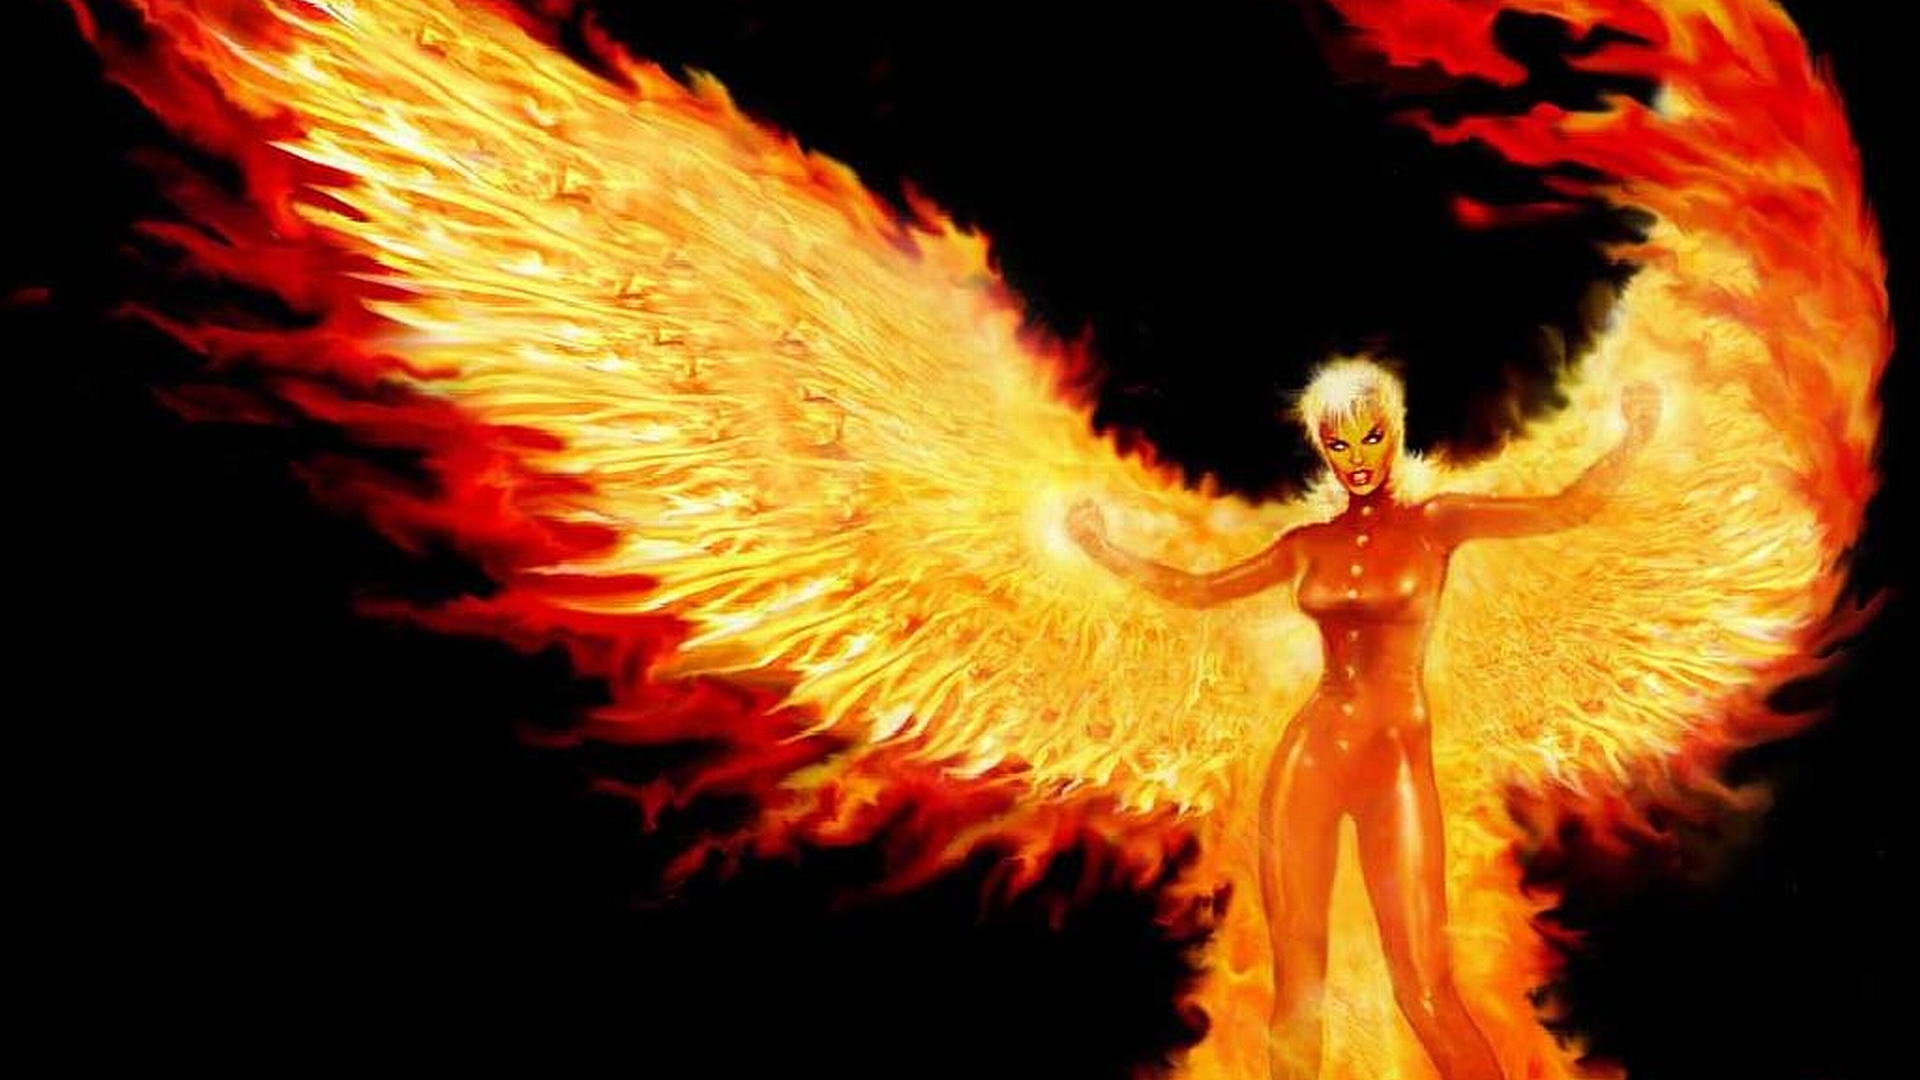 Comics   Phoenix Phoenix Wallpaper 1920x1080